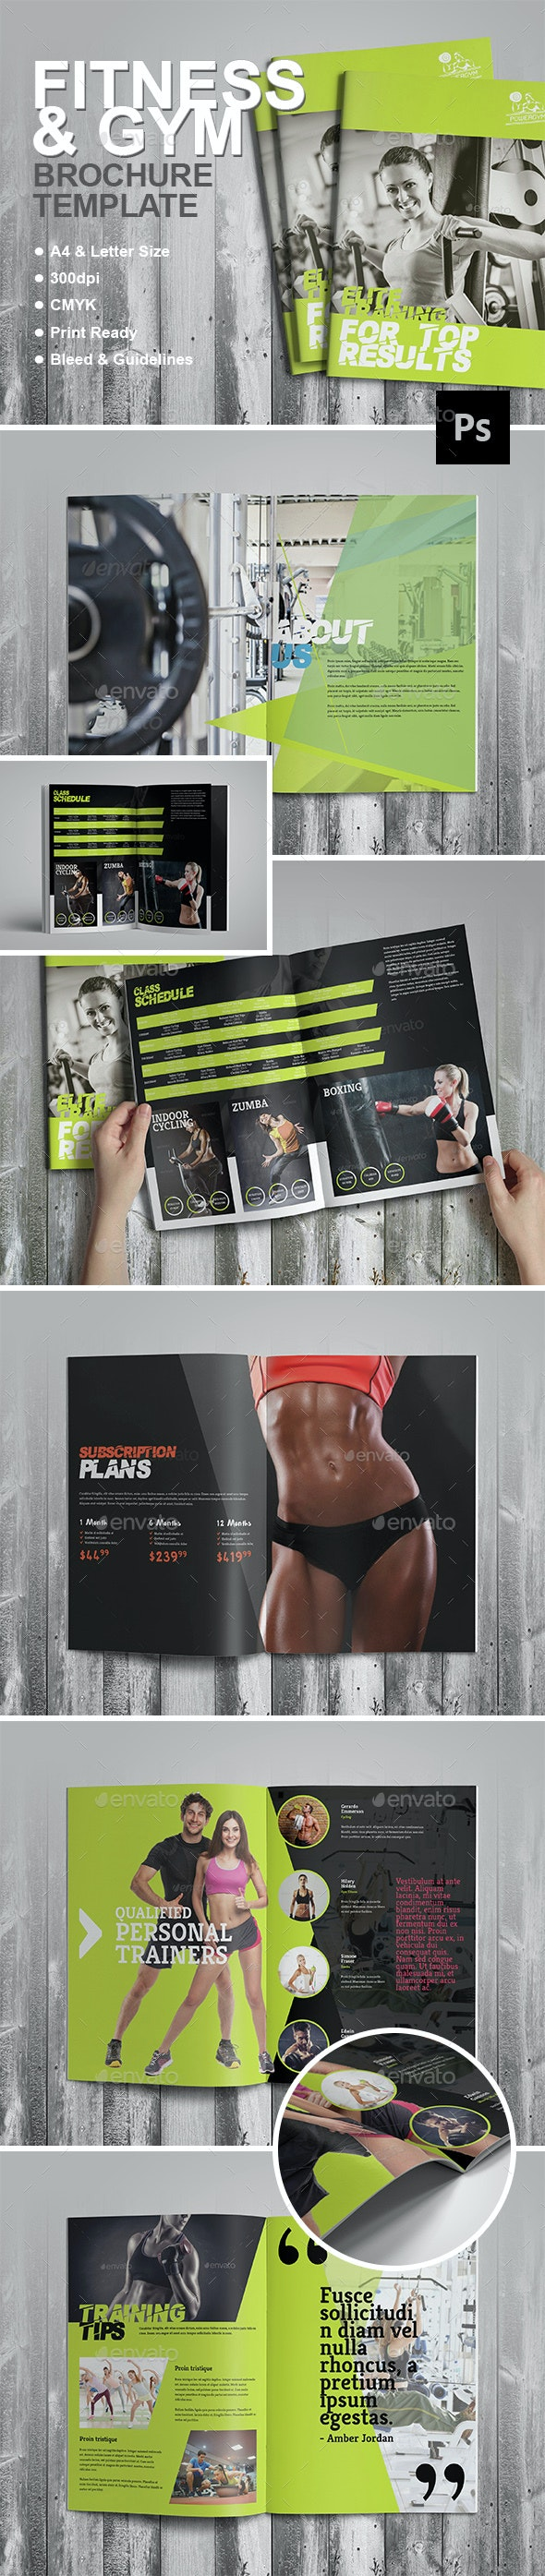 Fitness Brochure - Corporate Brochures